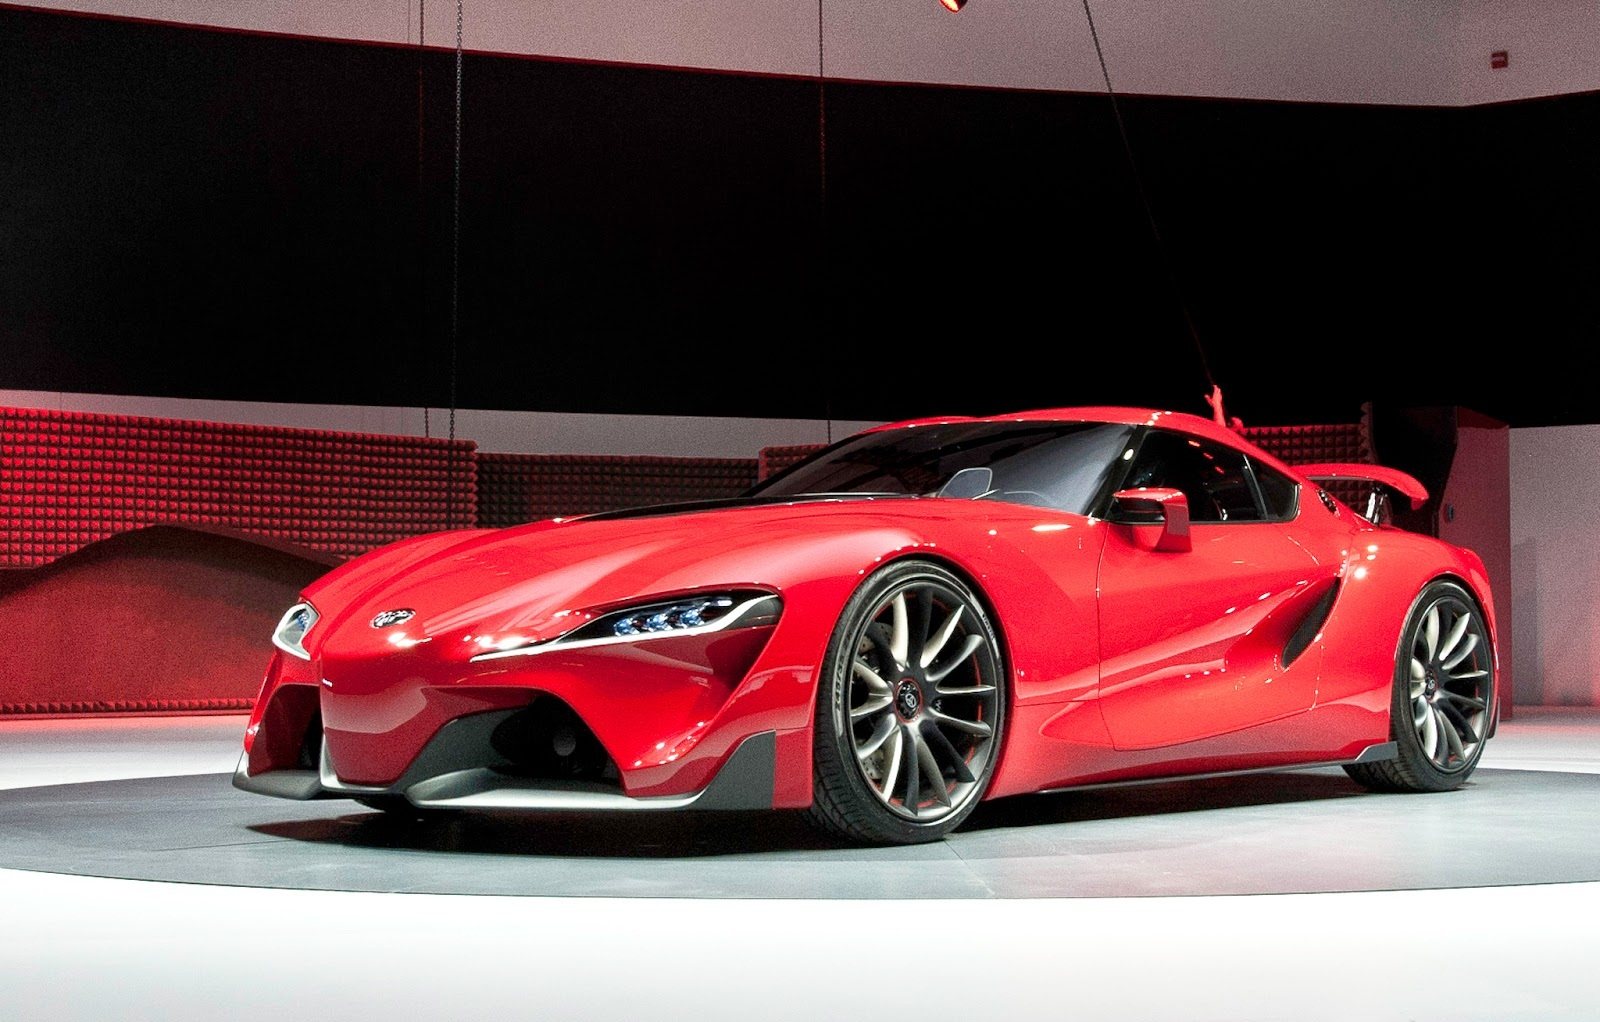 2016 Toyota Supra Ft1 Price Annouced Cars Booster